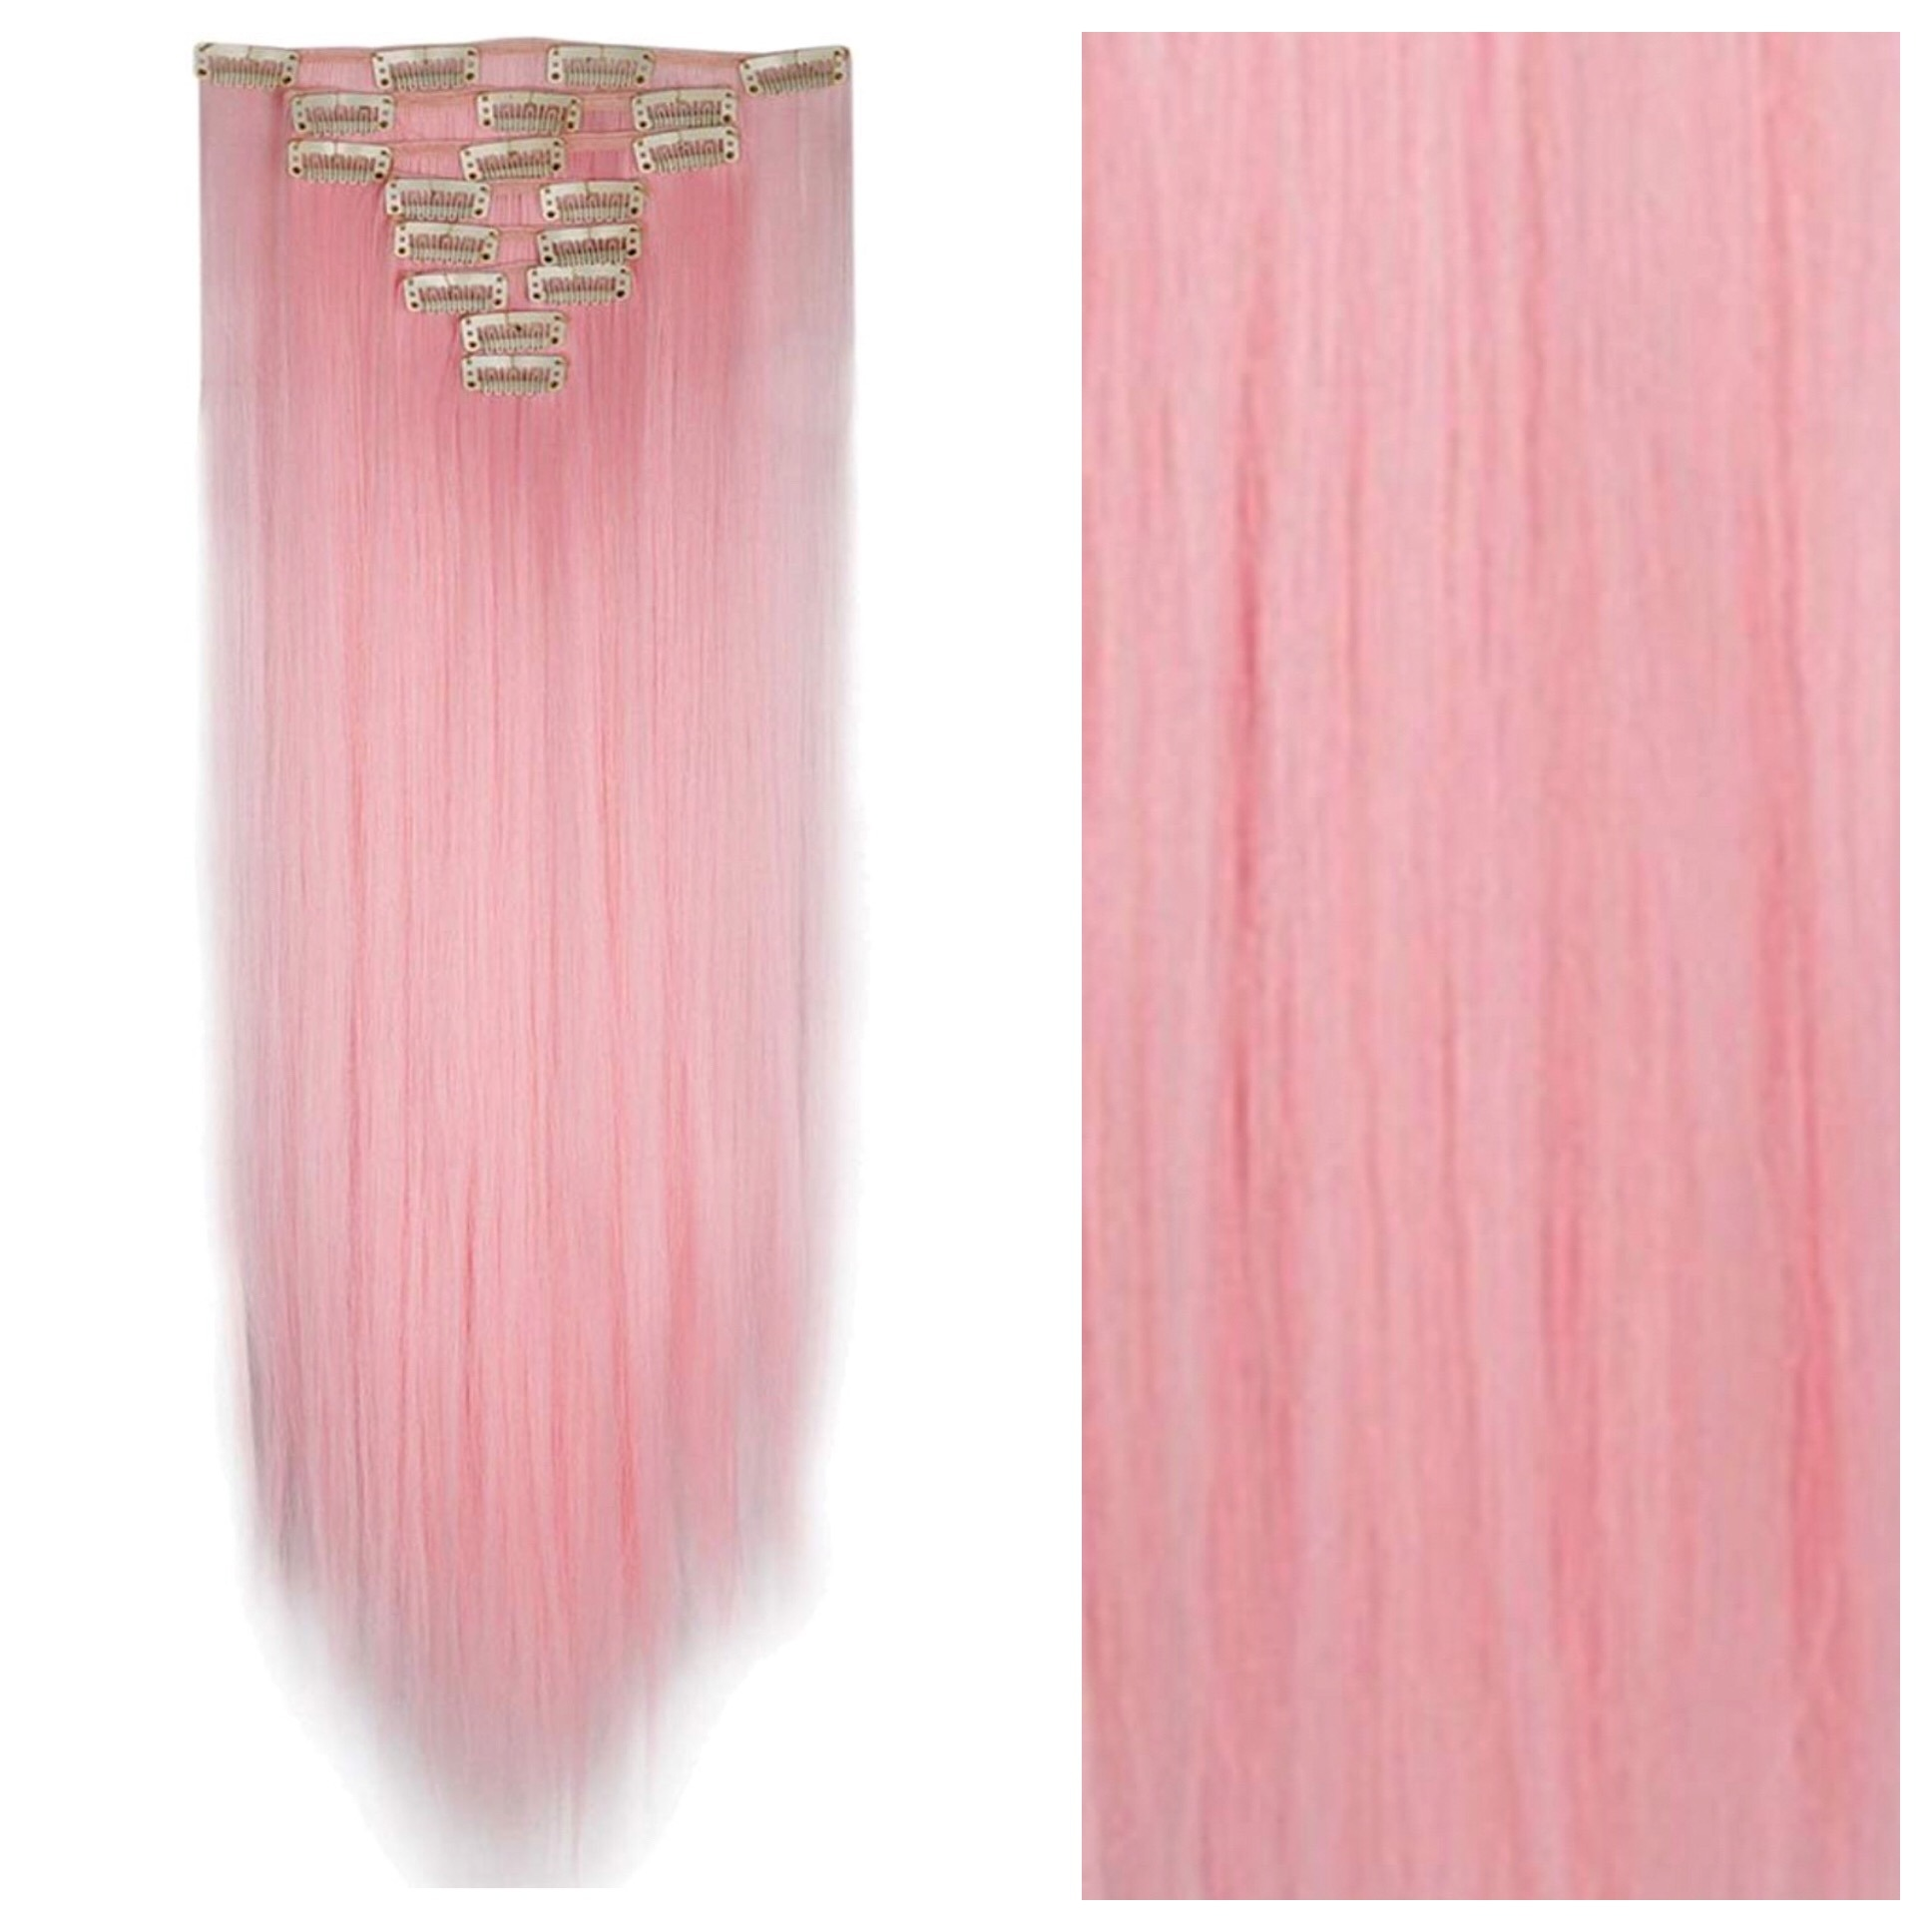 Pink Clip In Hair Extensions 26 Double Weft 200g Pastel Baby Pink